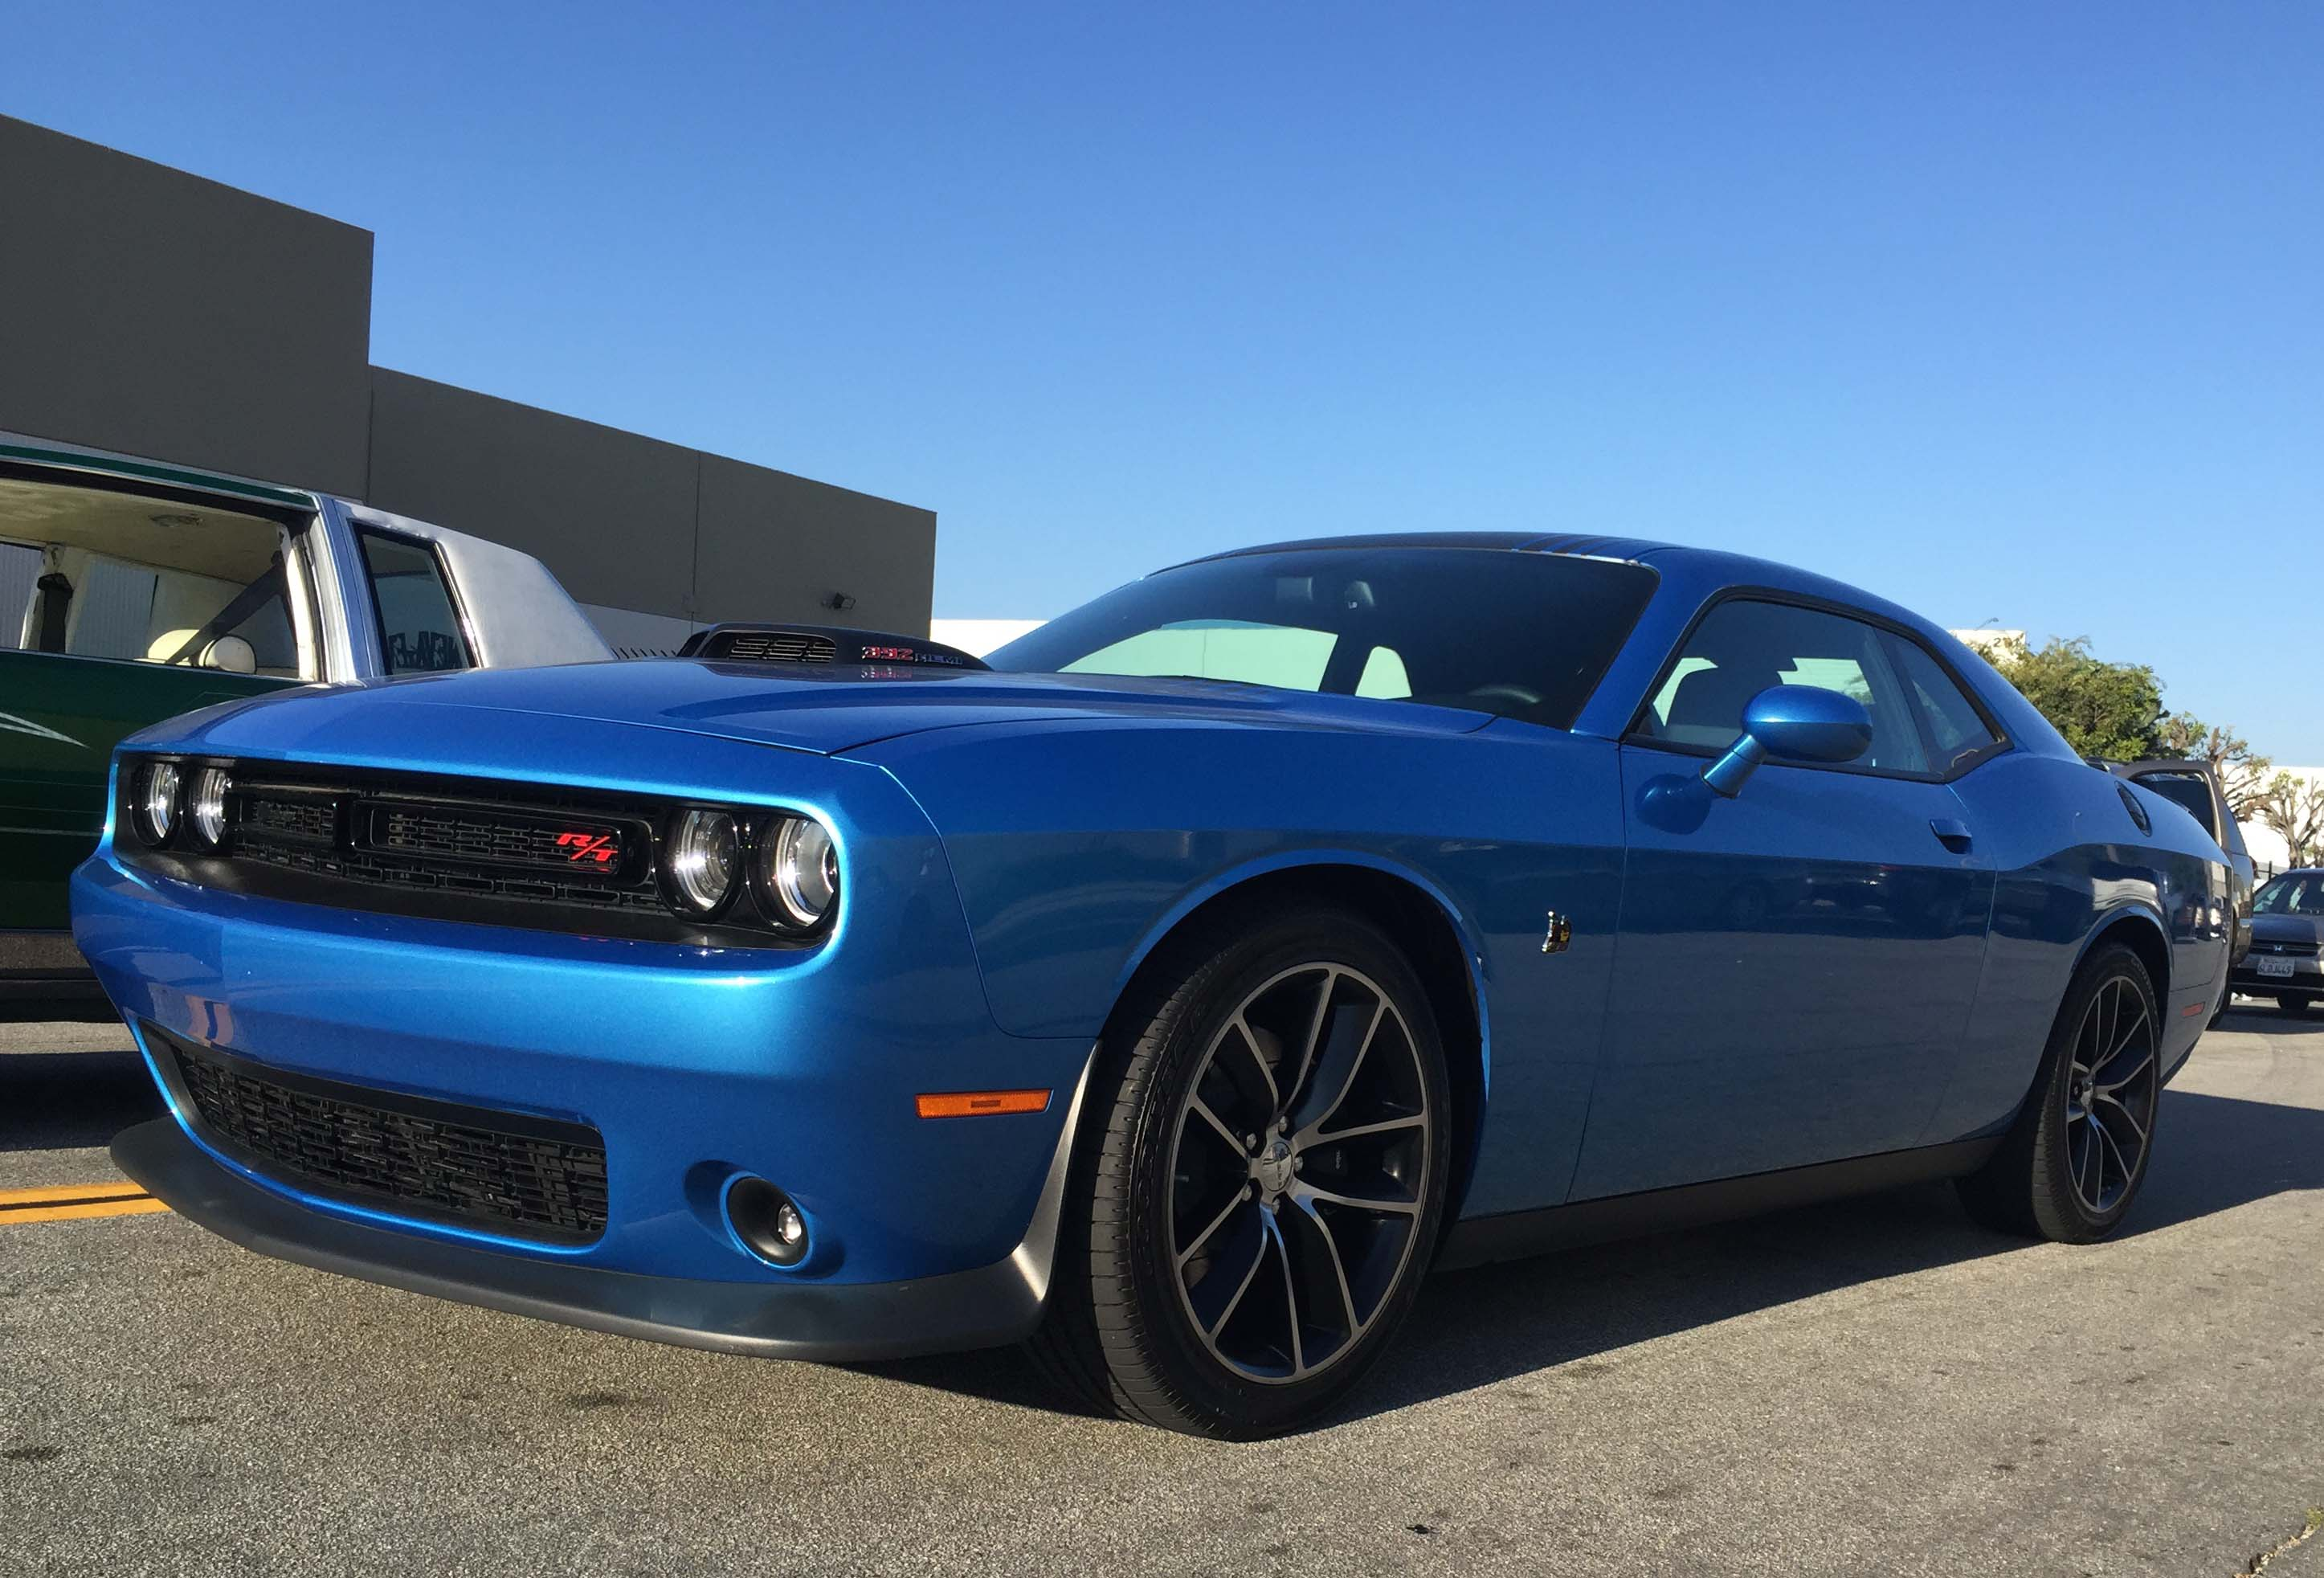 2015 Dodge Challenger Scat Pack Shaker Brutal Power